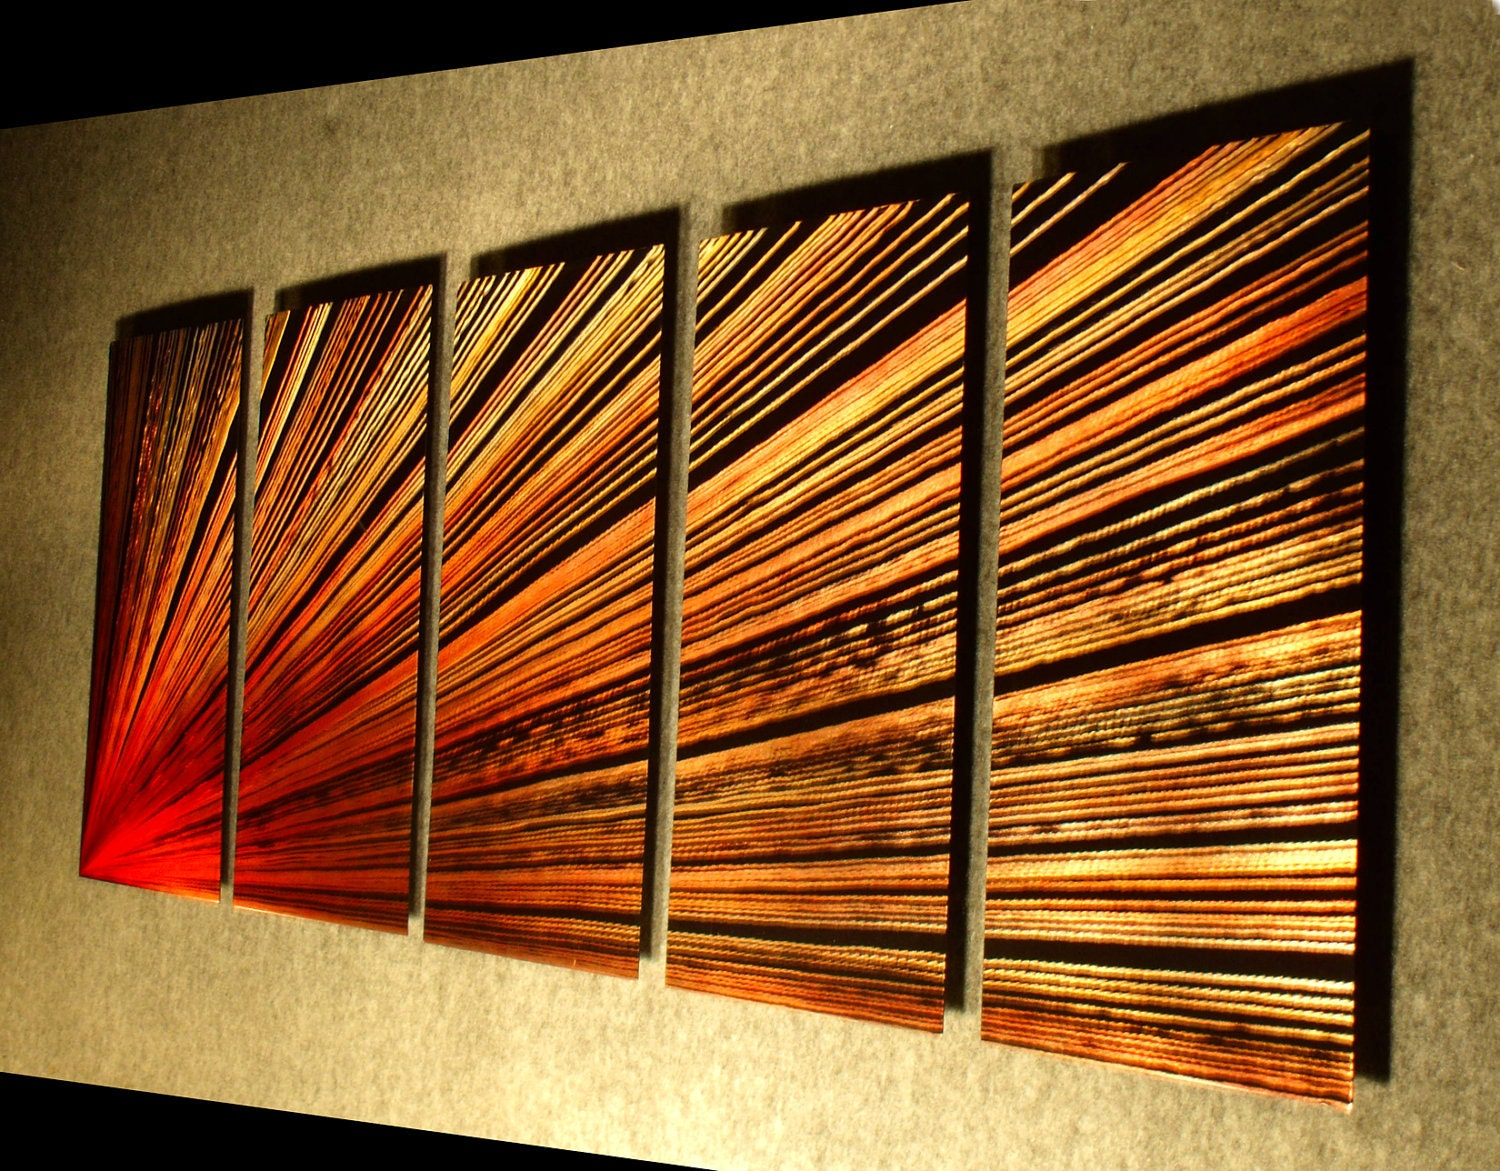 Contemporary Wall Art Decor: Metal Wall Art Sculpture Contemporary Abstract Painting Metal